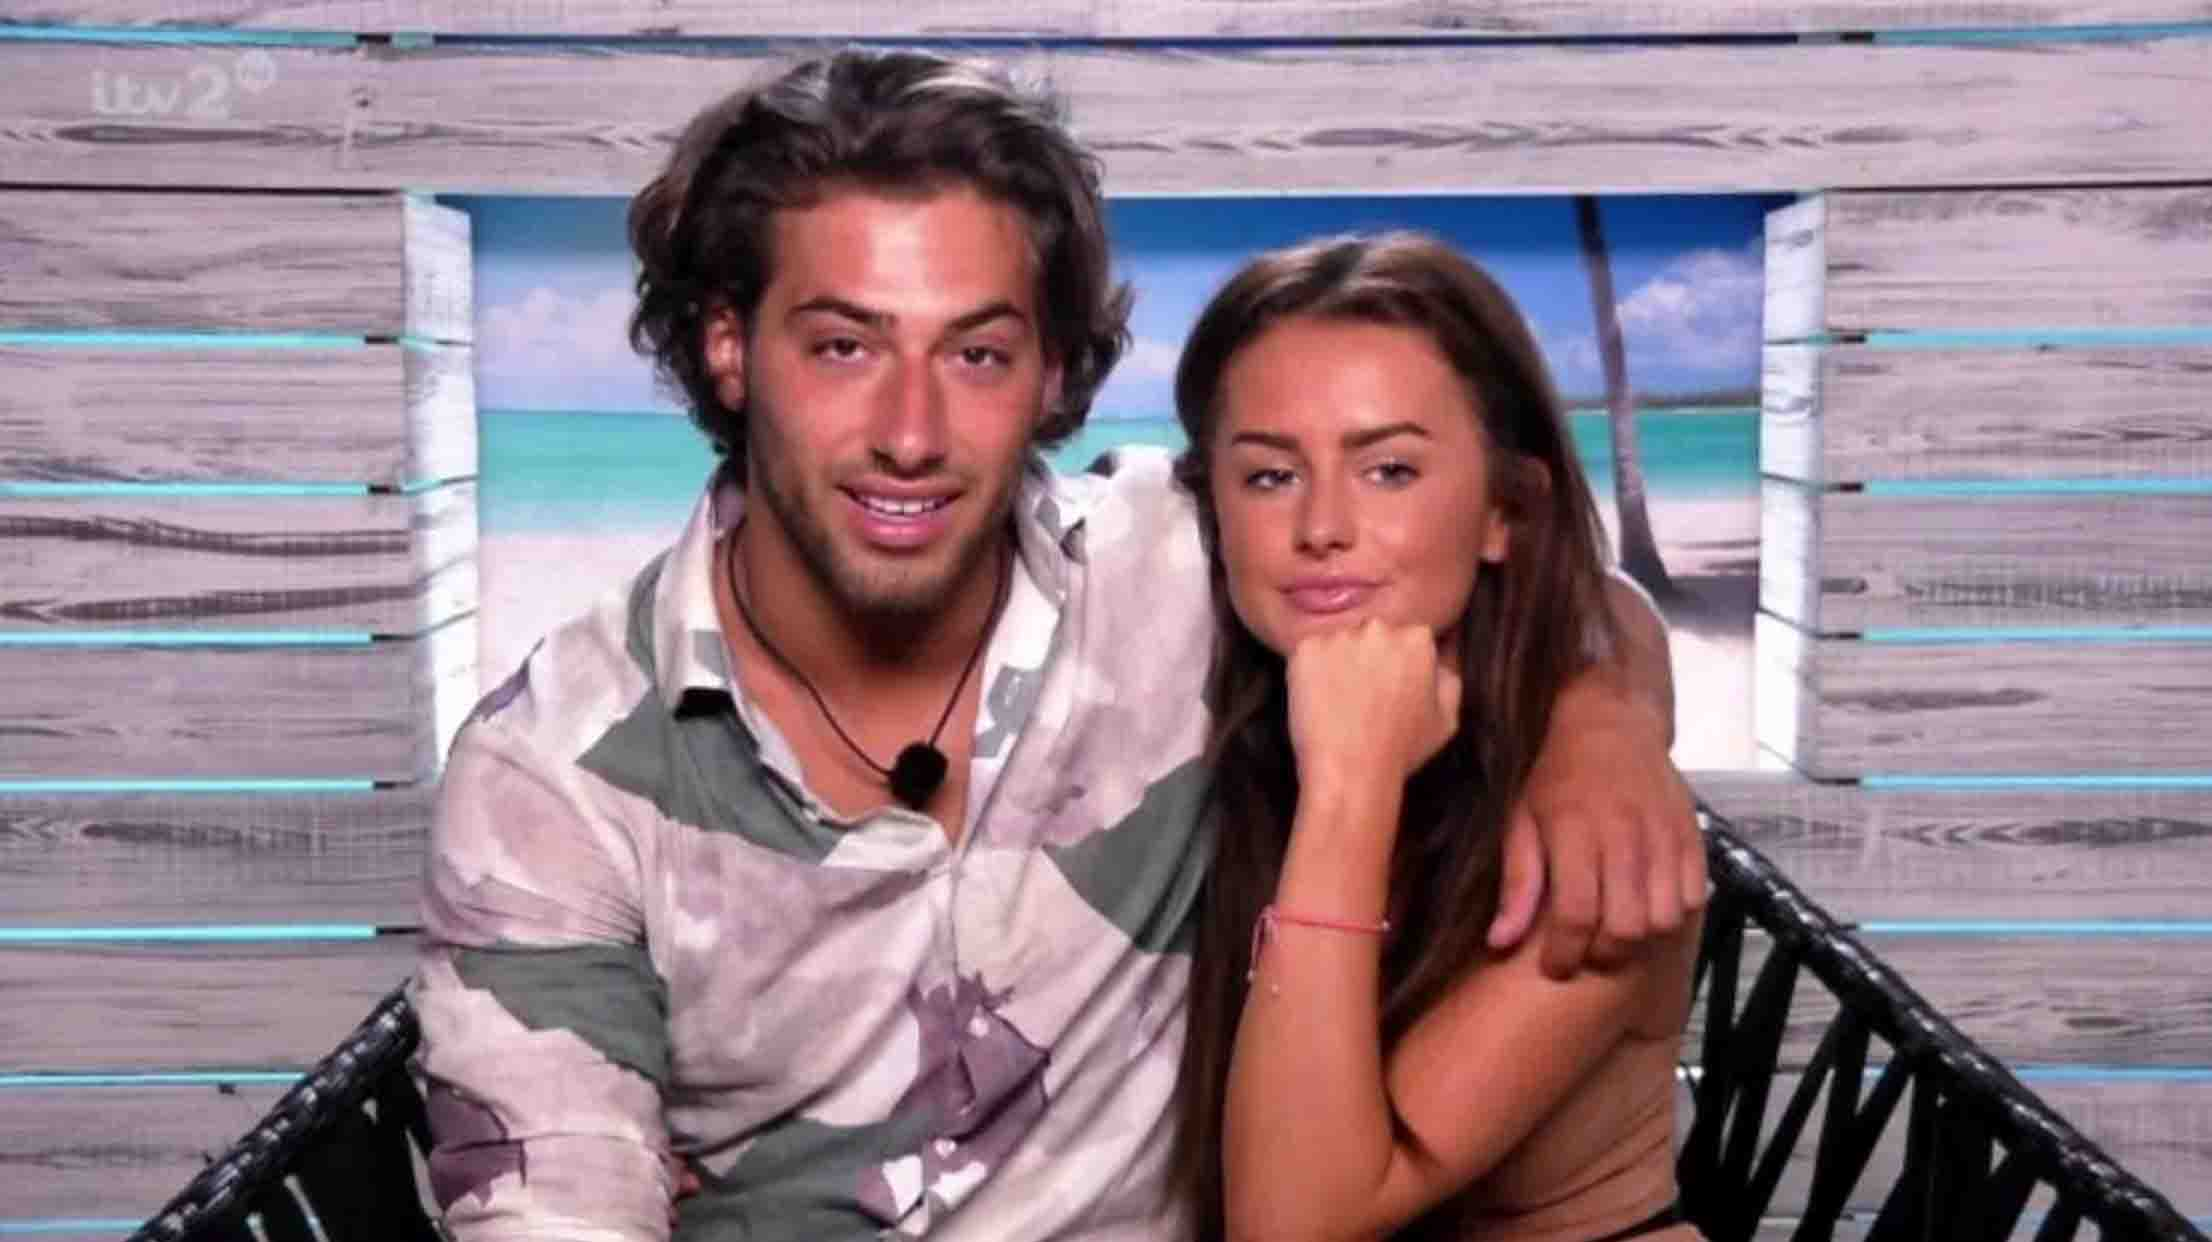 Love Island producers 'forced to cut sex sessions'